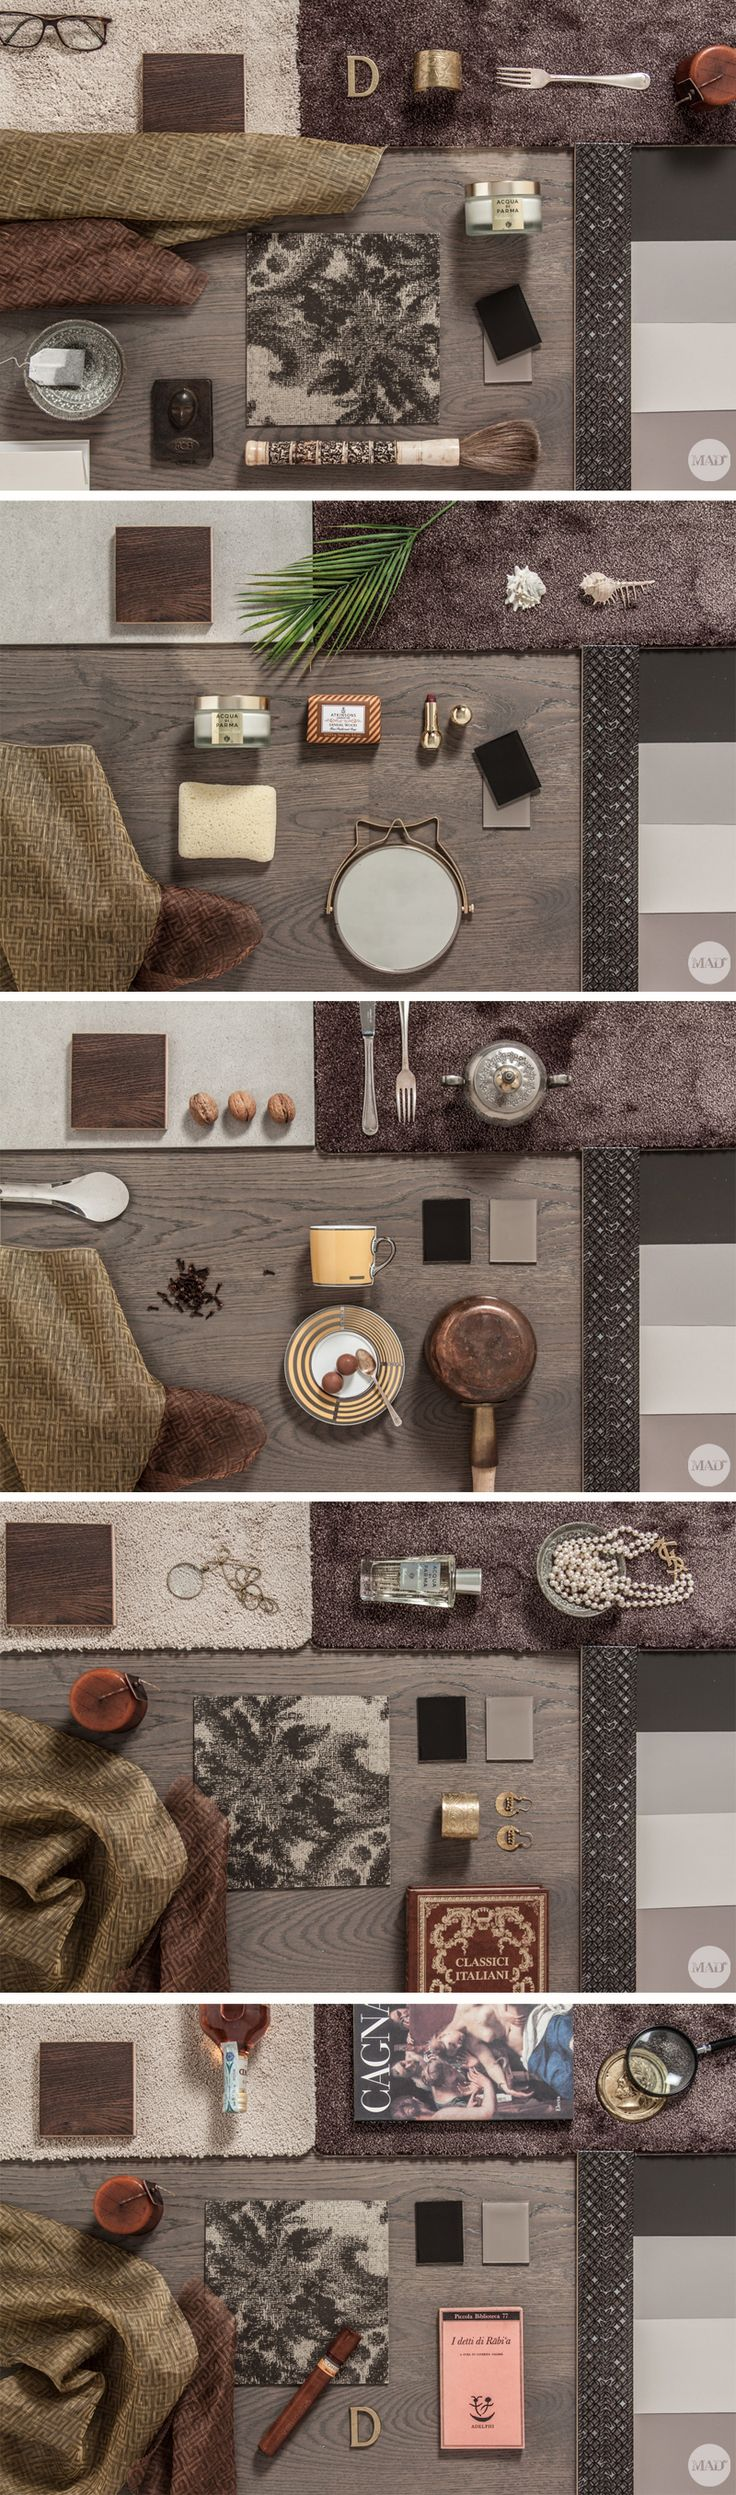 Moodboards Classic style #moodboard #classic #lifestyle #inspiration #interior #decoration #home #kitchen #bedroom #bathroom #living